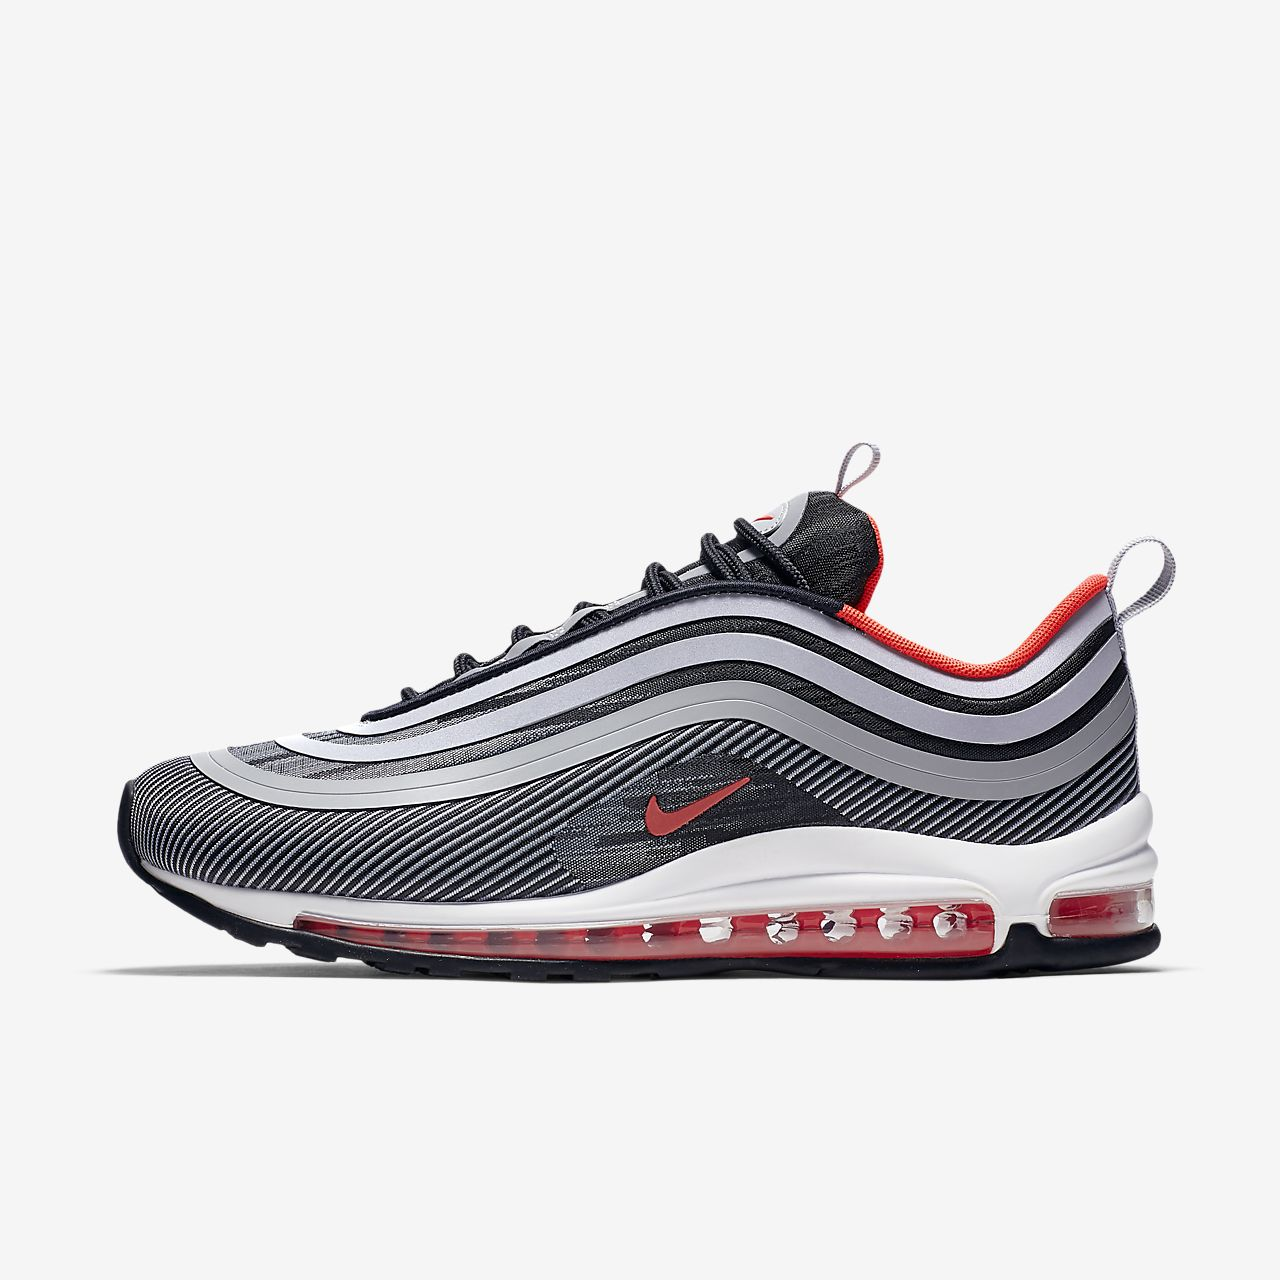 7de2dc487f Nike Air Max 97 Ultra '17 Men's Shoe. Nike.com ID